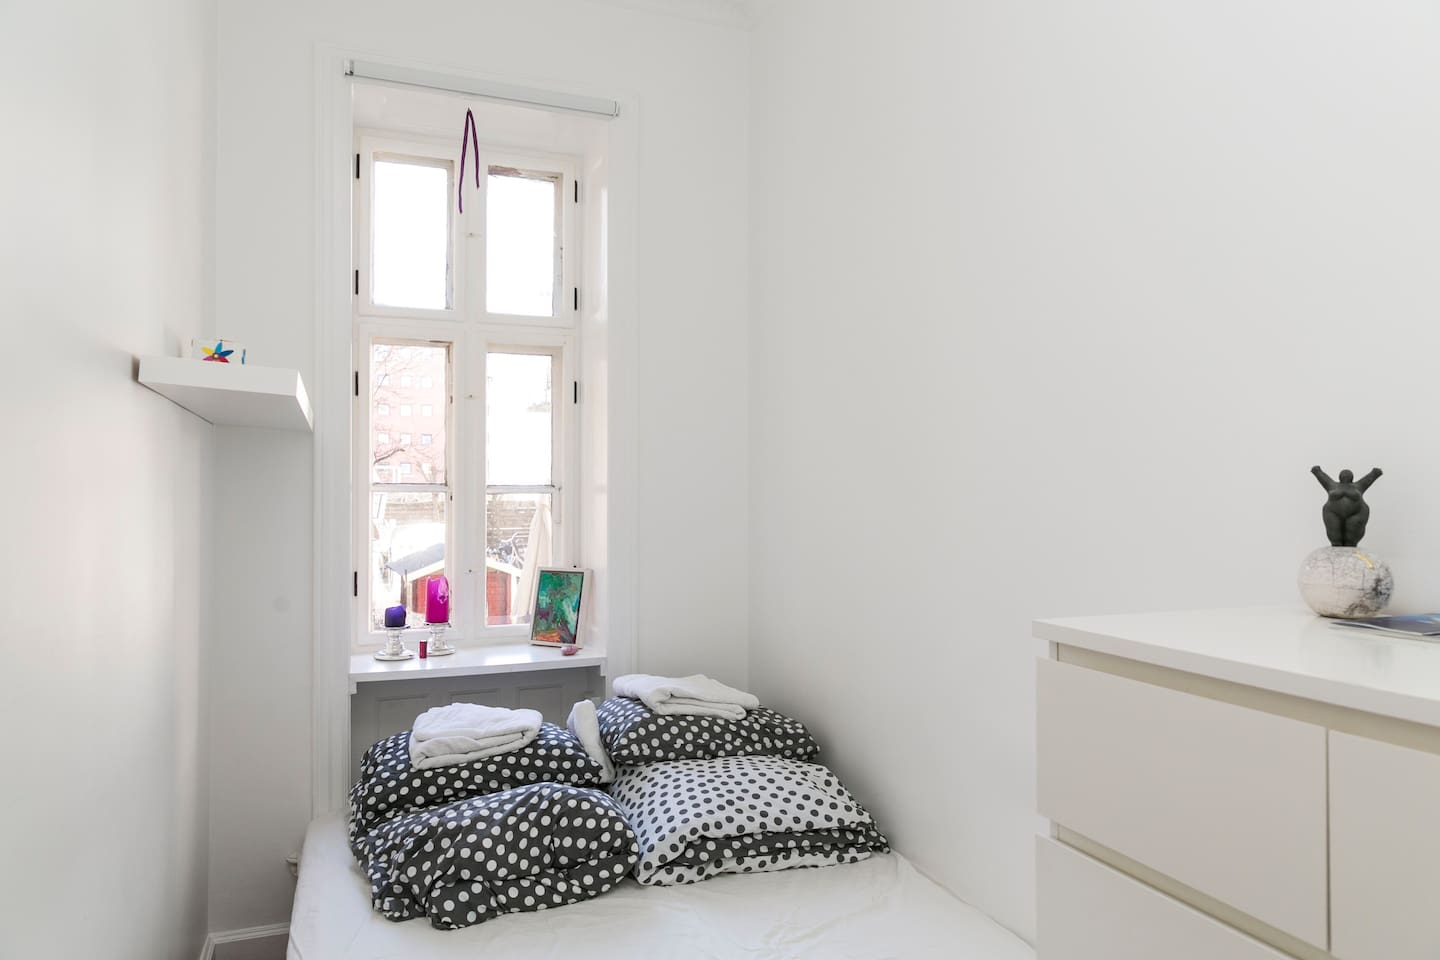 Your bed room, facing the court yard